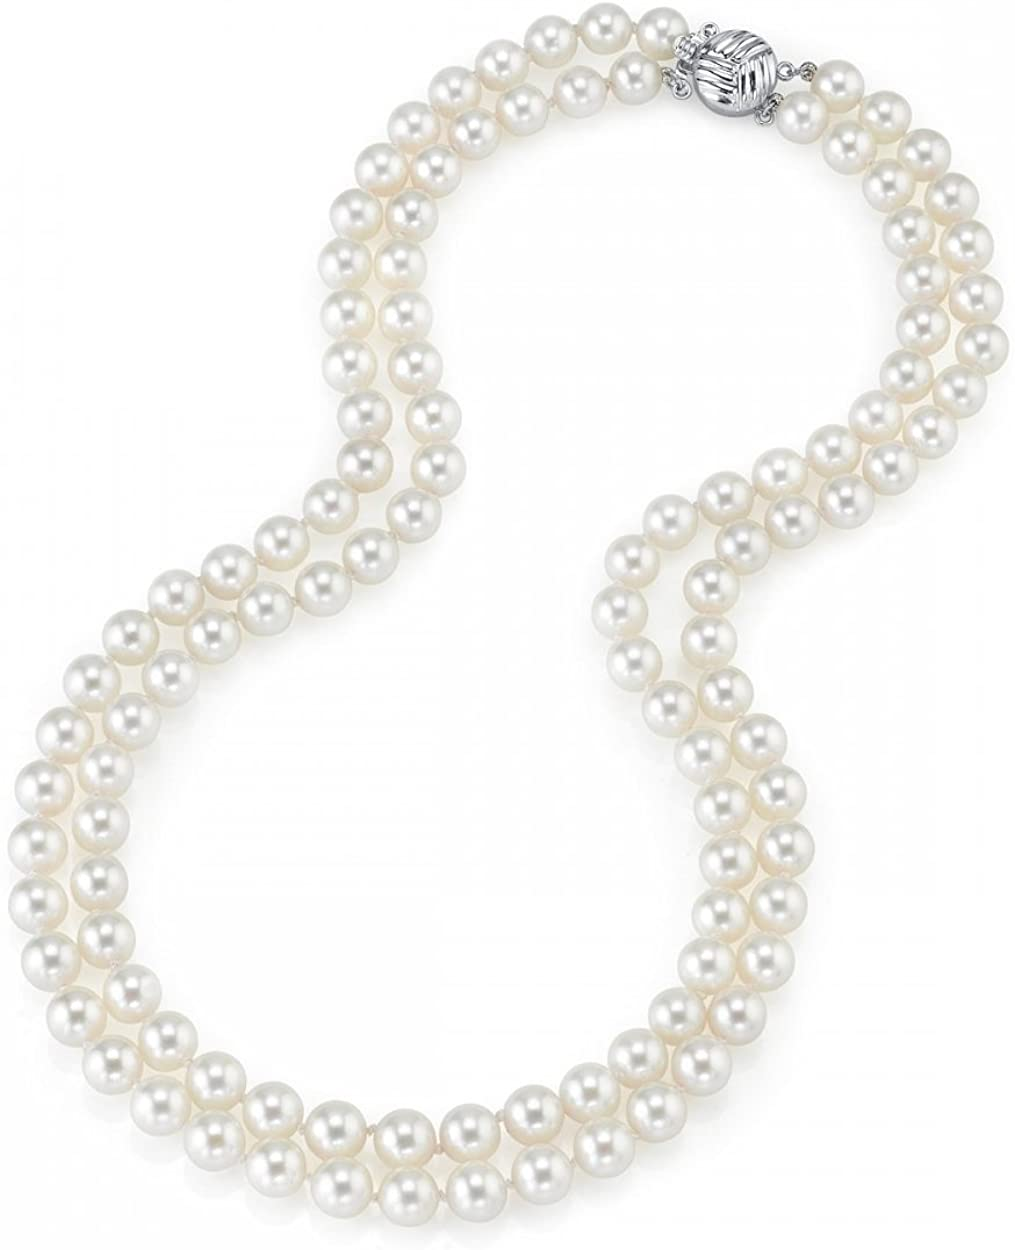 THE PEARL SOURCE 14K Gold 9-10mm AAAA Quality Double Strand White Freshwater Cultured Pearl Necklace for Women in 16-17